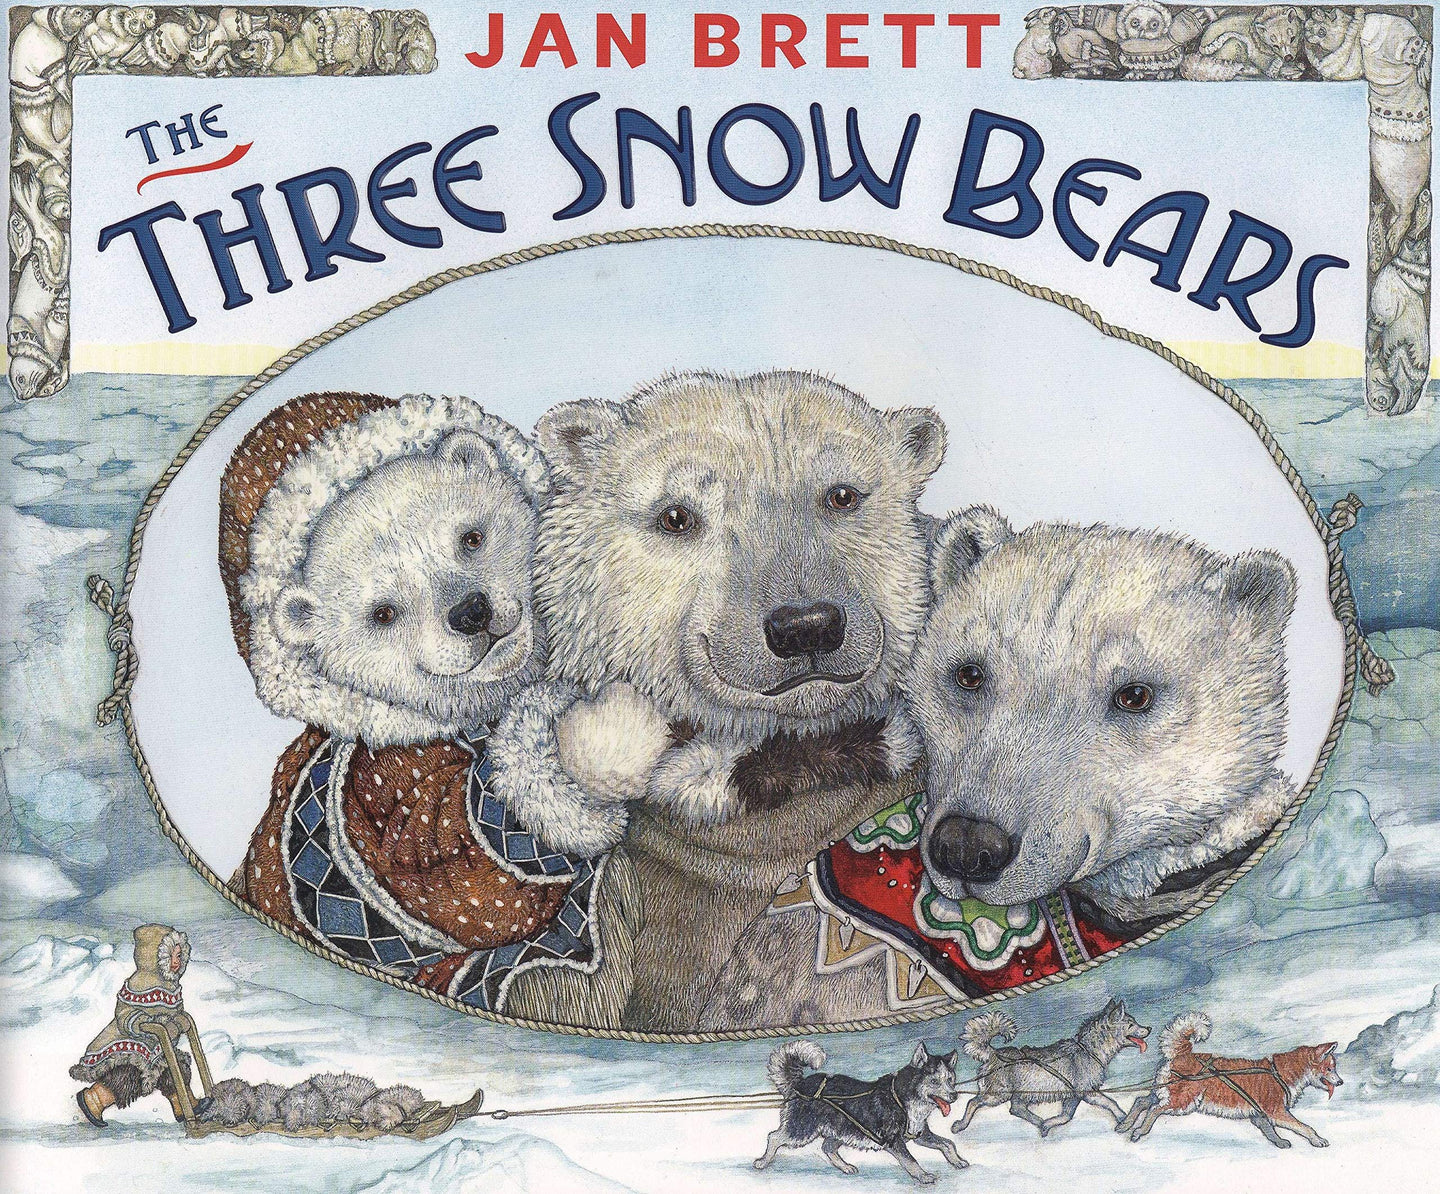 The Three Snow Bears - Jan Brett